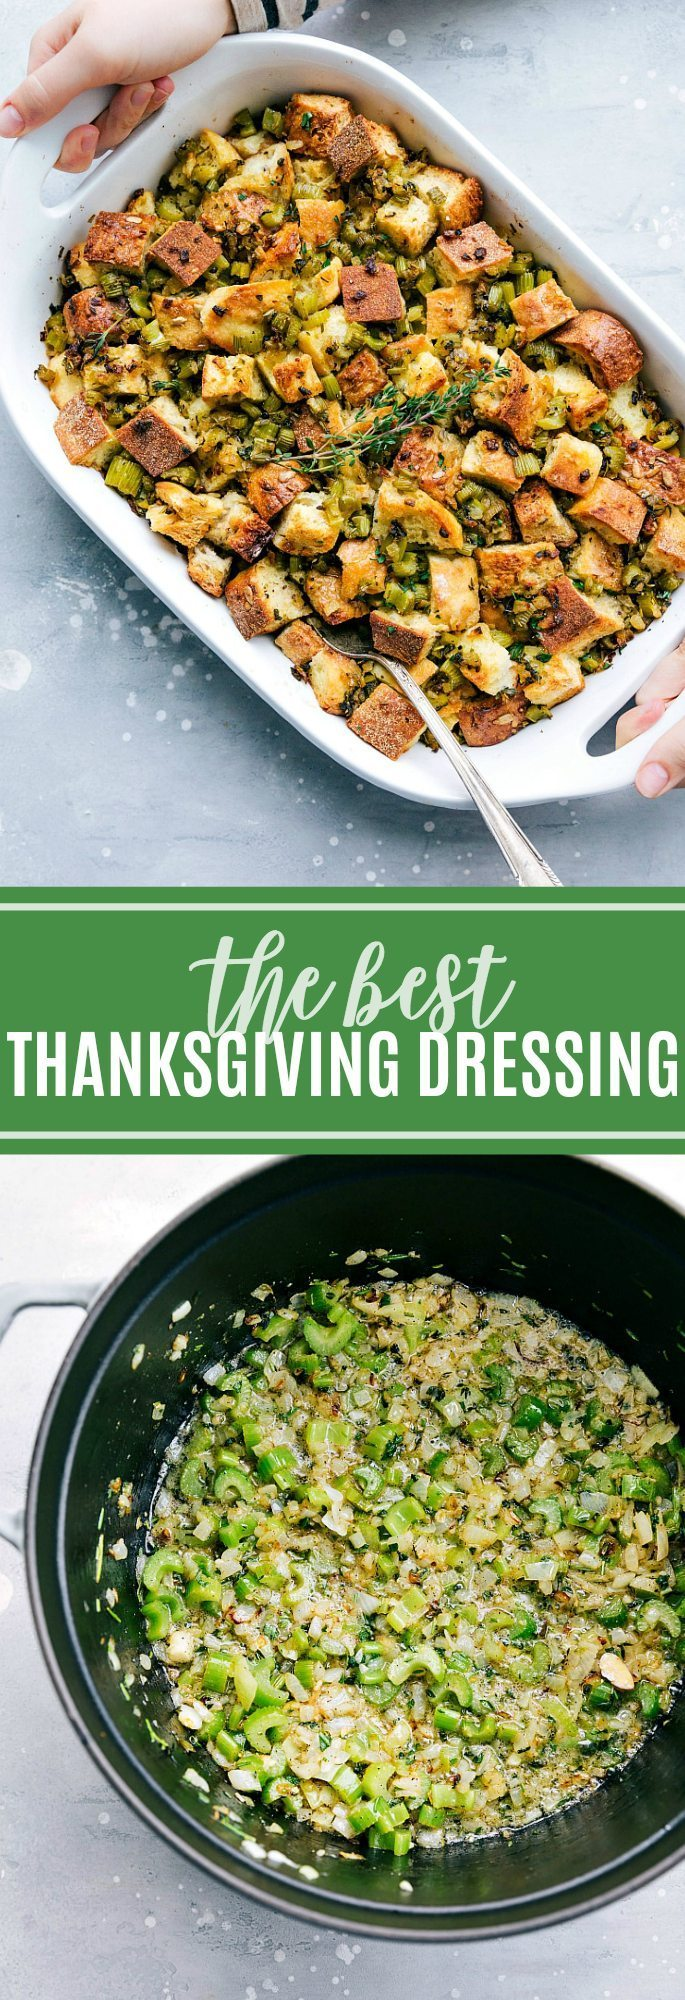 The ultimate BEST EVER simple (and you can make ahead!) Thanksgiving dressing! via chelseasmessyapron.com #thanksgiving #dressing #easy #dinner #fall #bread #quick #makeahead